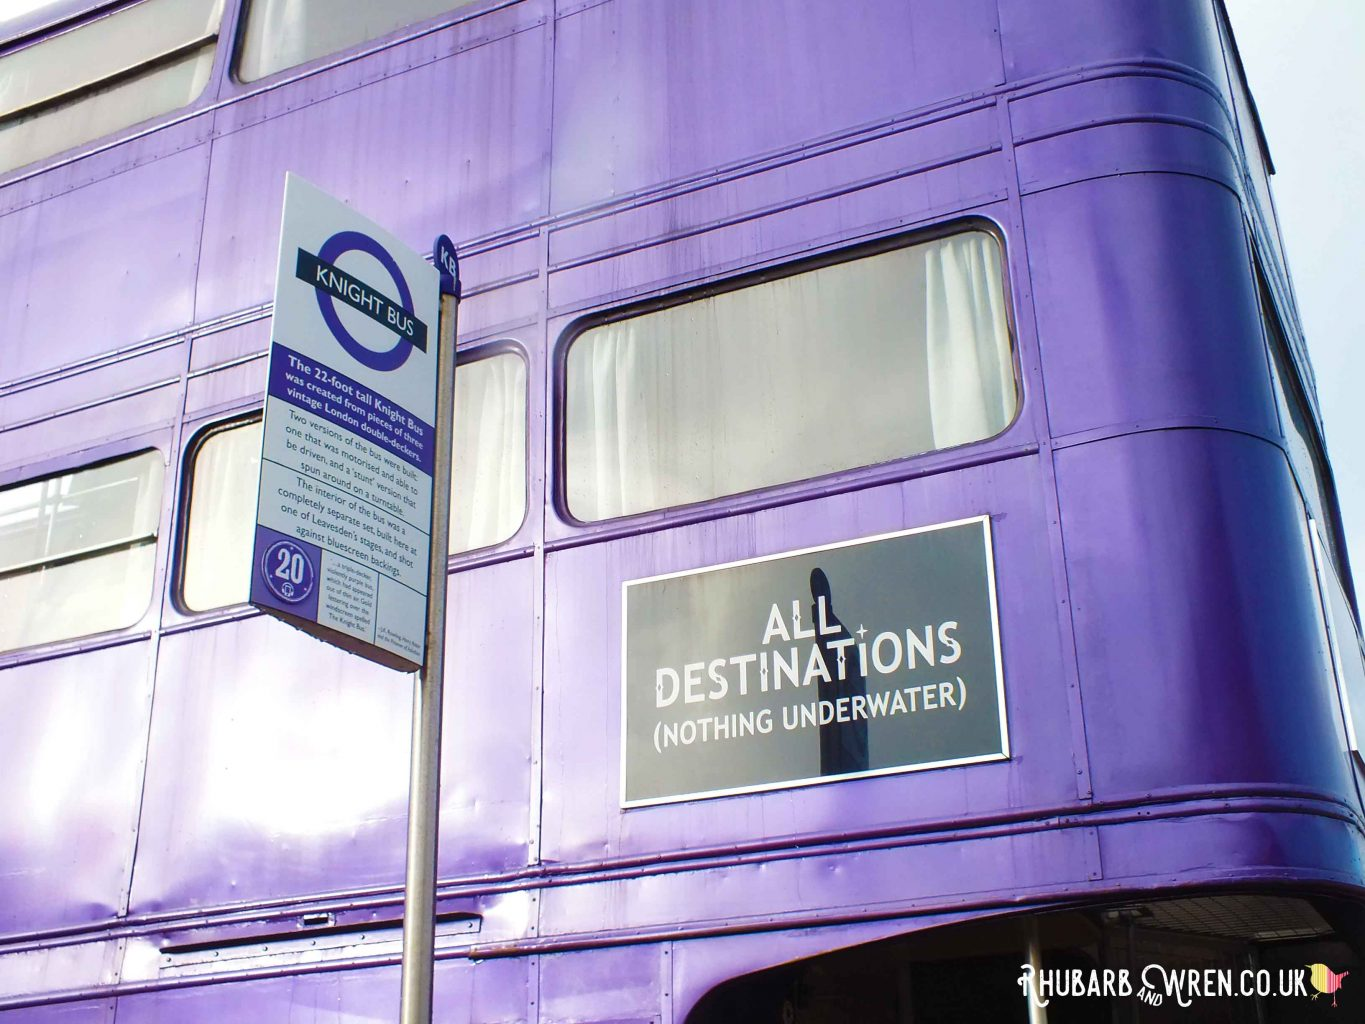 The Knight Bus at the Harry Potter studio tour